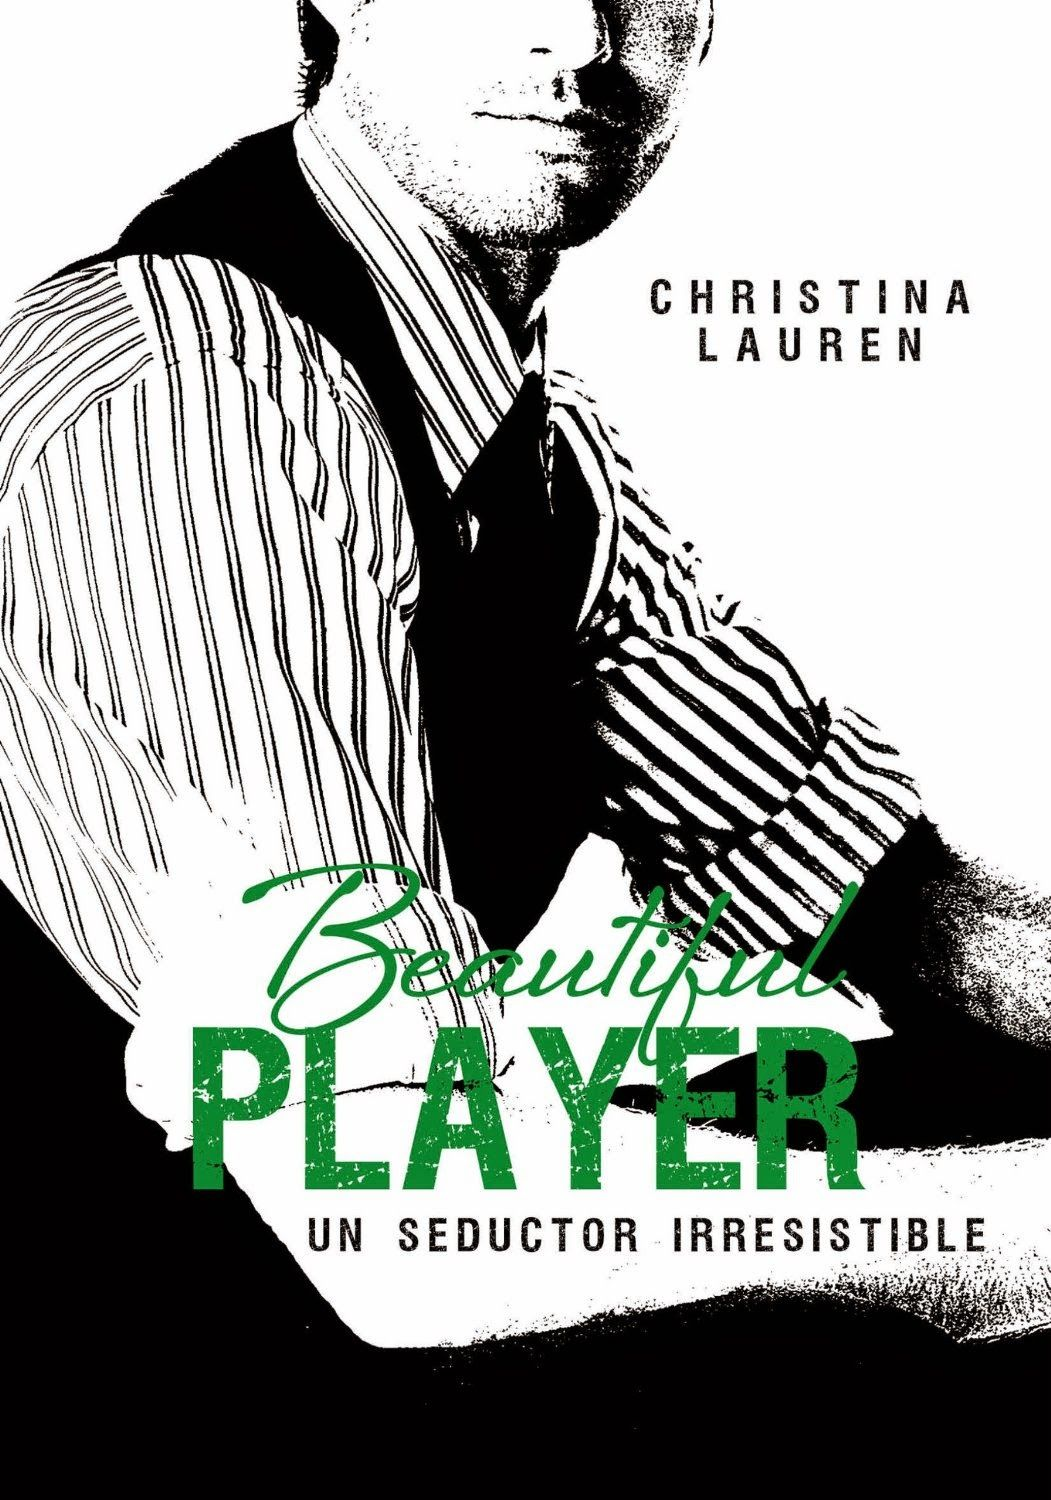 Leer Libros Online Gratis Sin Registrarse Mis Momentos De Lectura Beautiful Player Beautiful